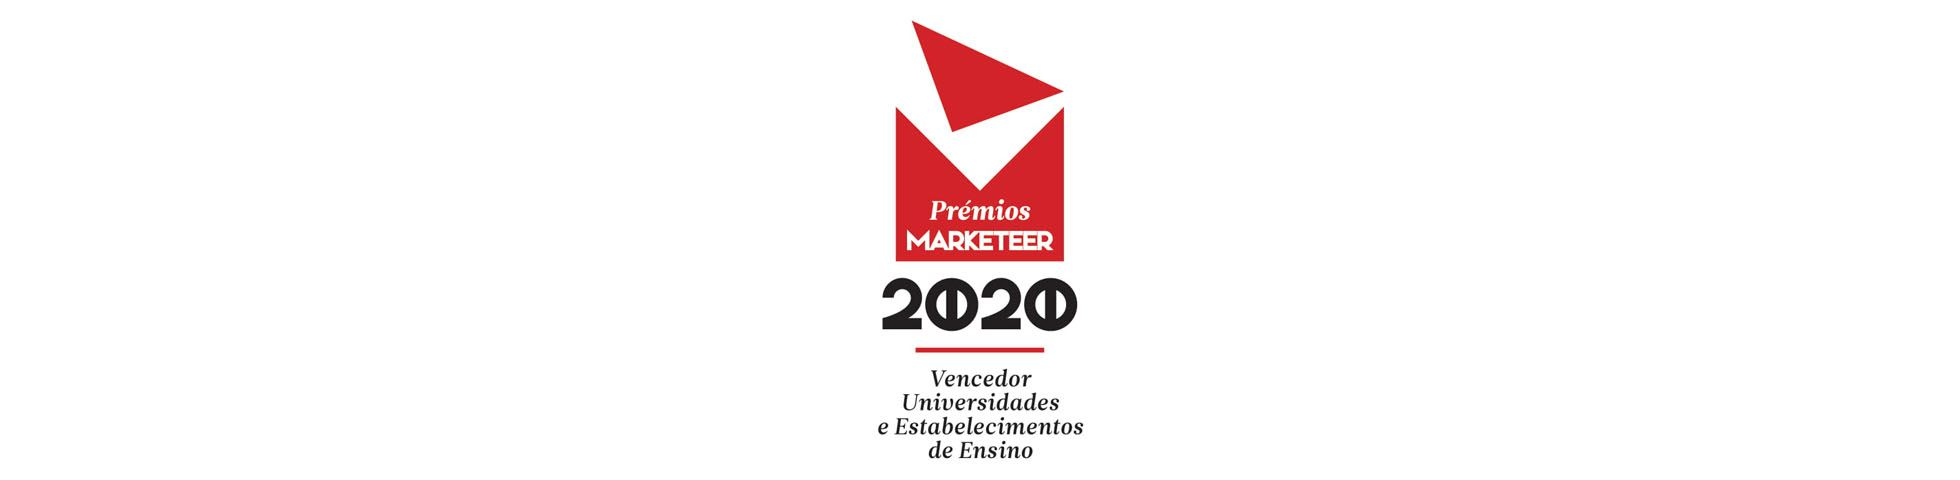 Nova SBE Wins Prémio Marketeer 2020 in the Universities and Education Institutions Category